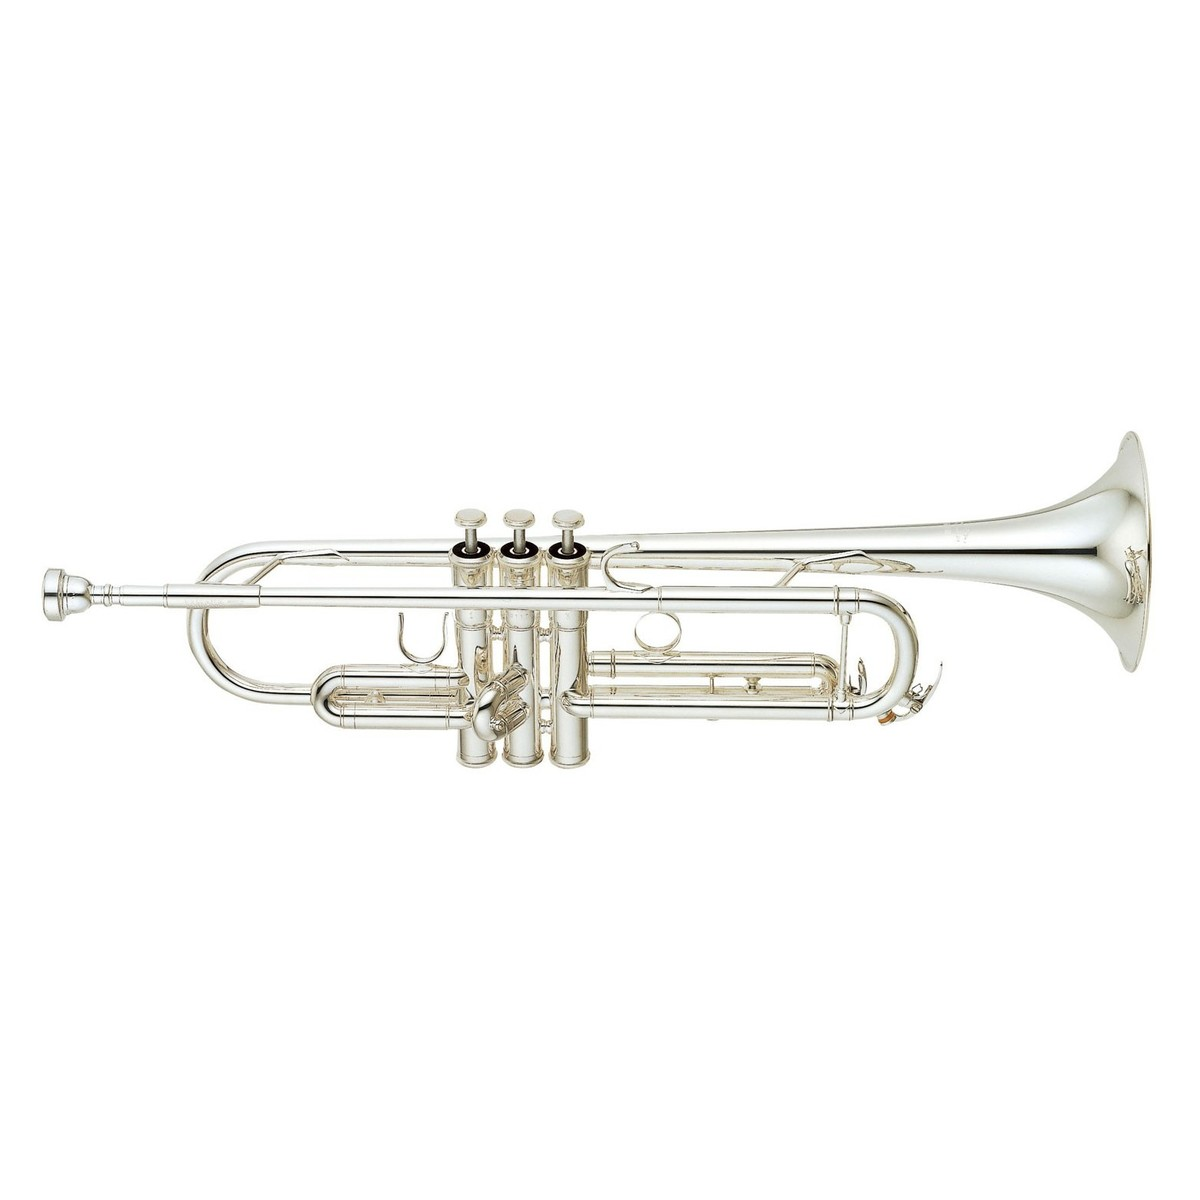 Yamaha Ytr Gs Large Bore Bb Trumpet Silver Plated